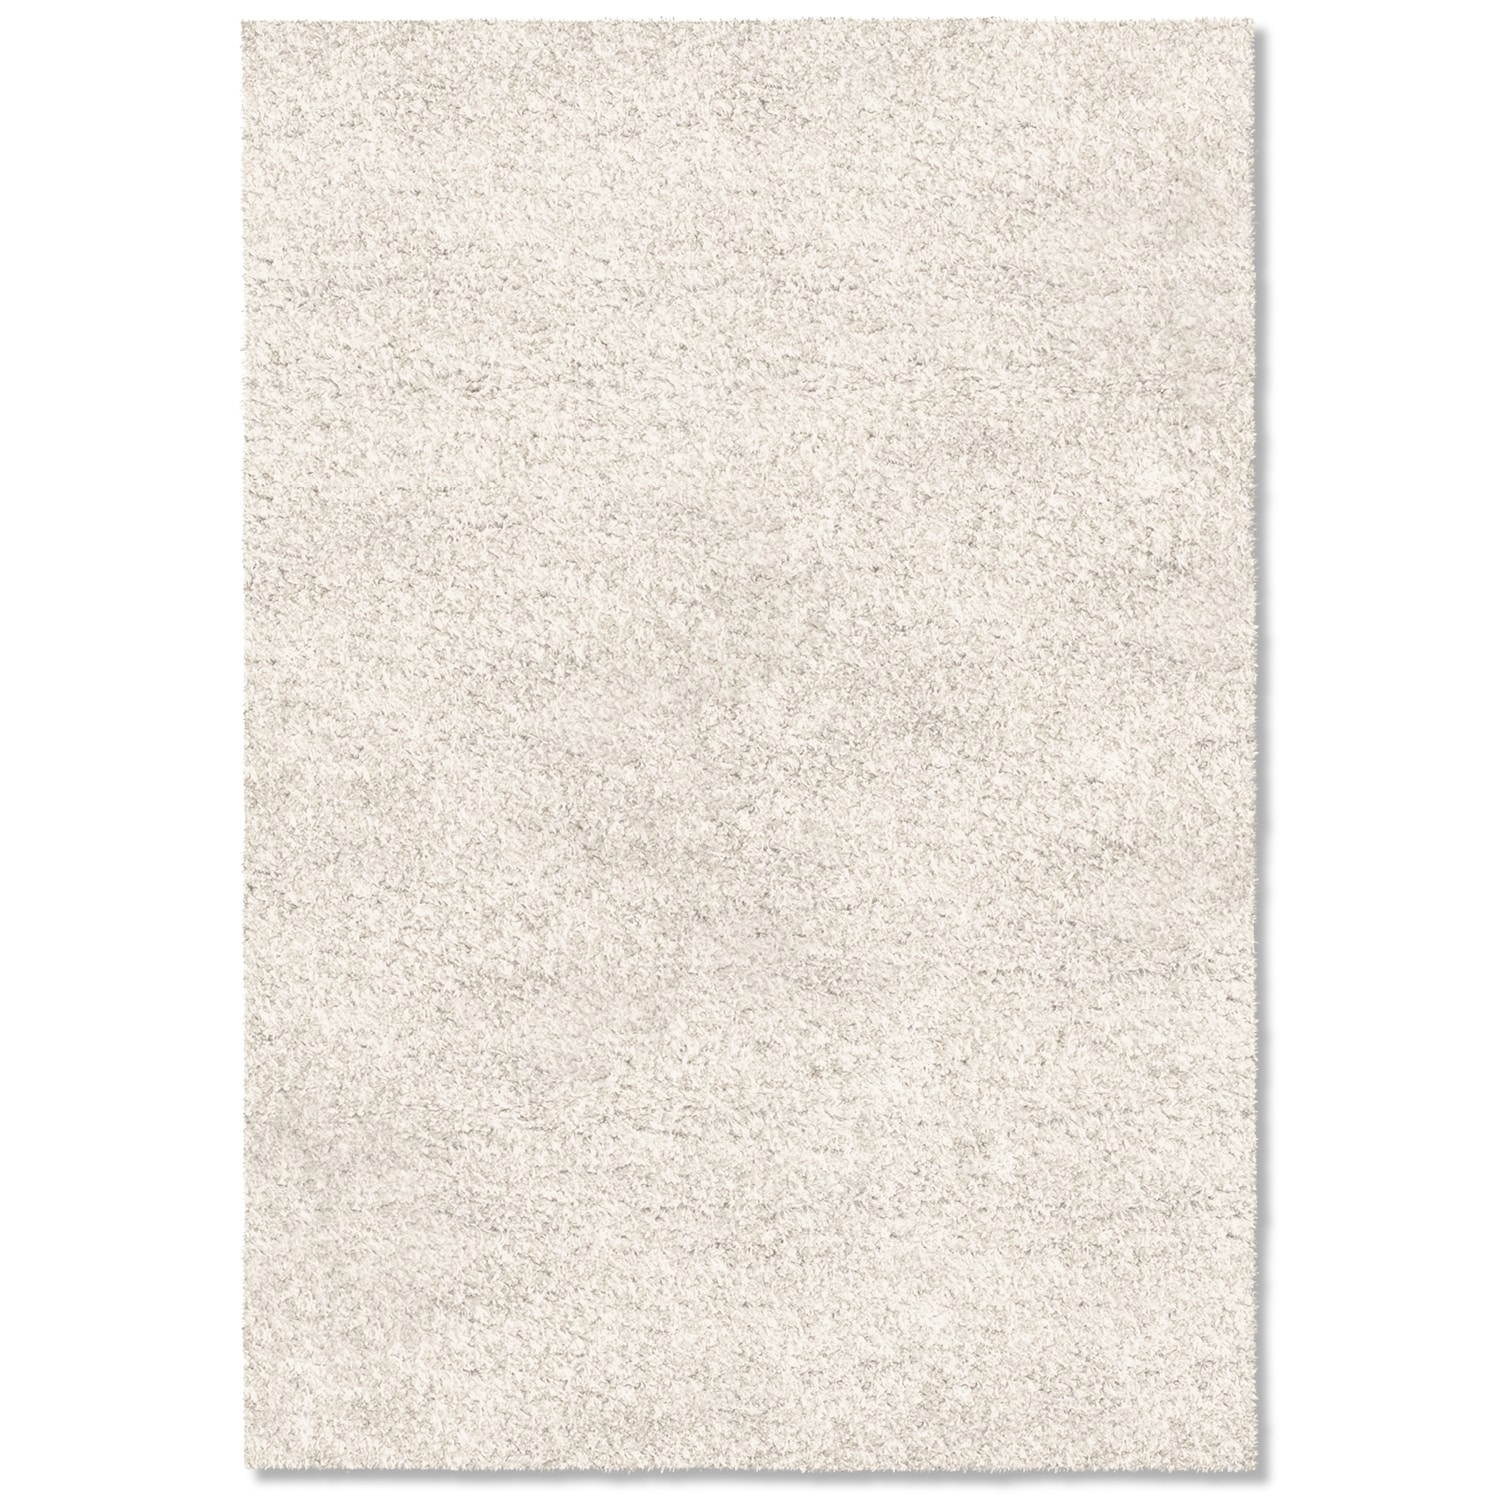 Rugs - Comfort White Shag Area Rug (5' x 8')